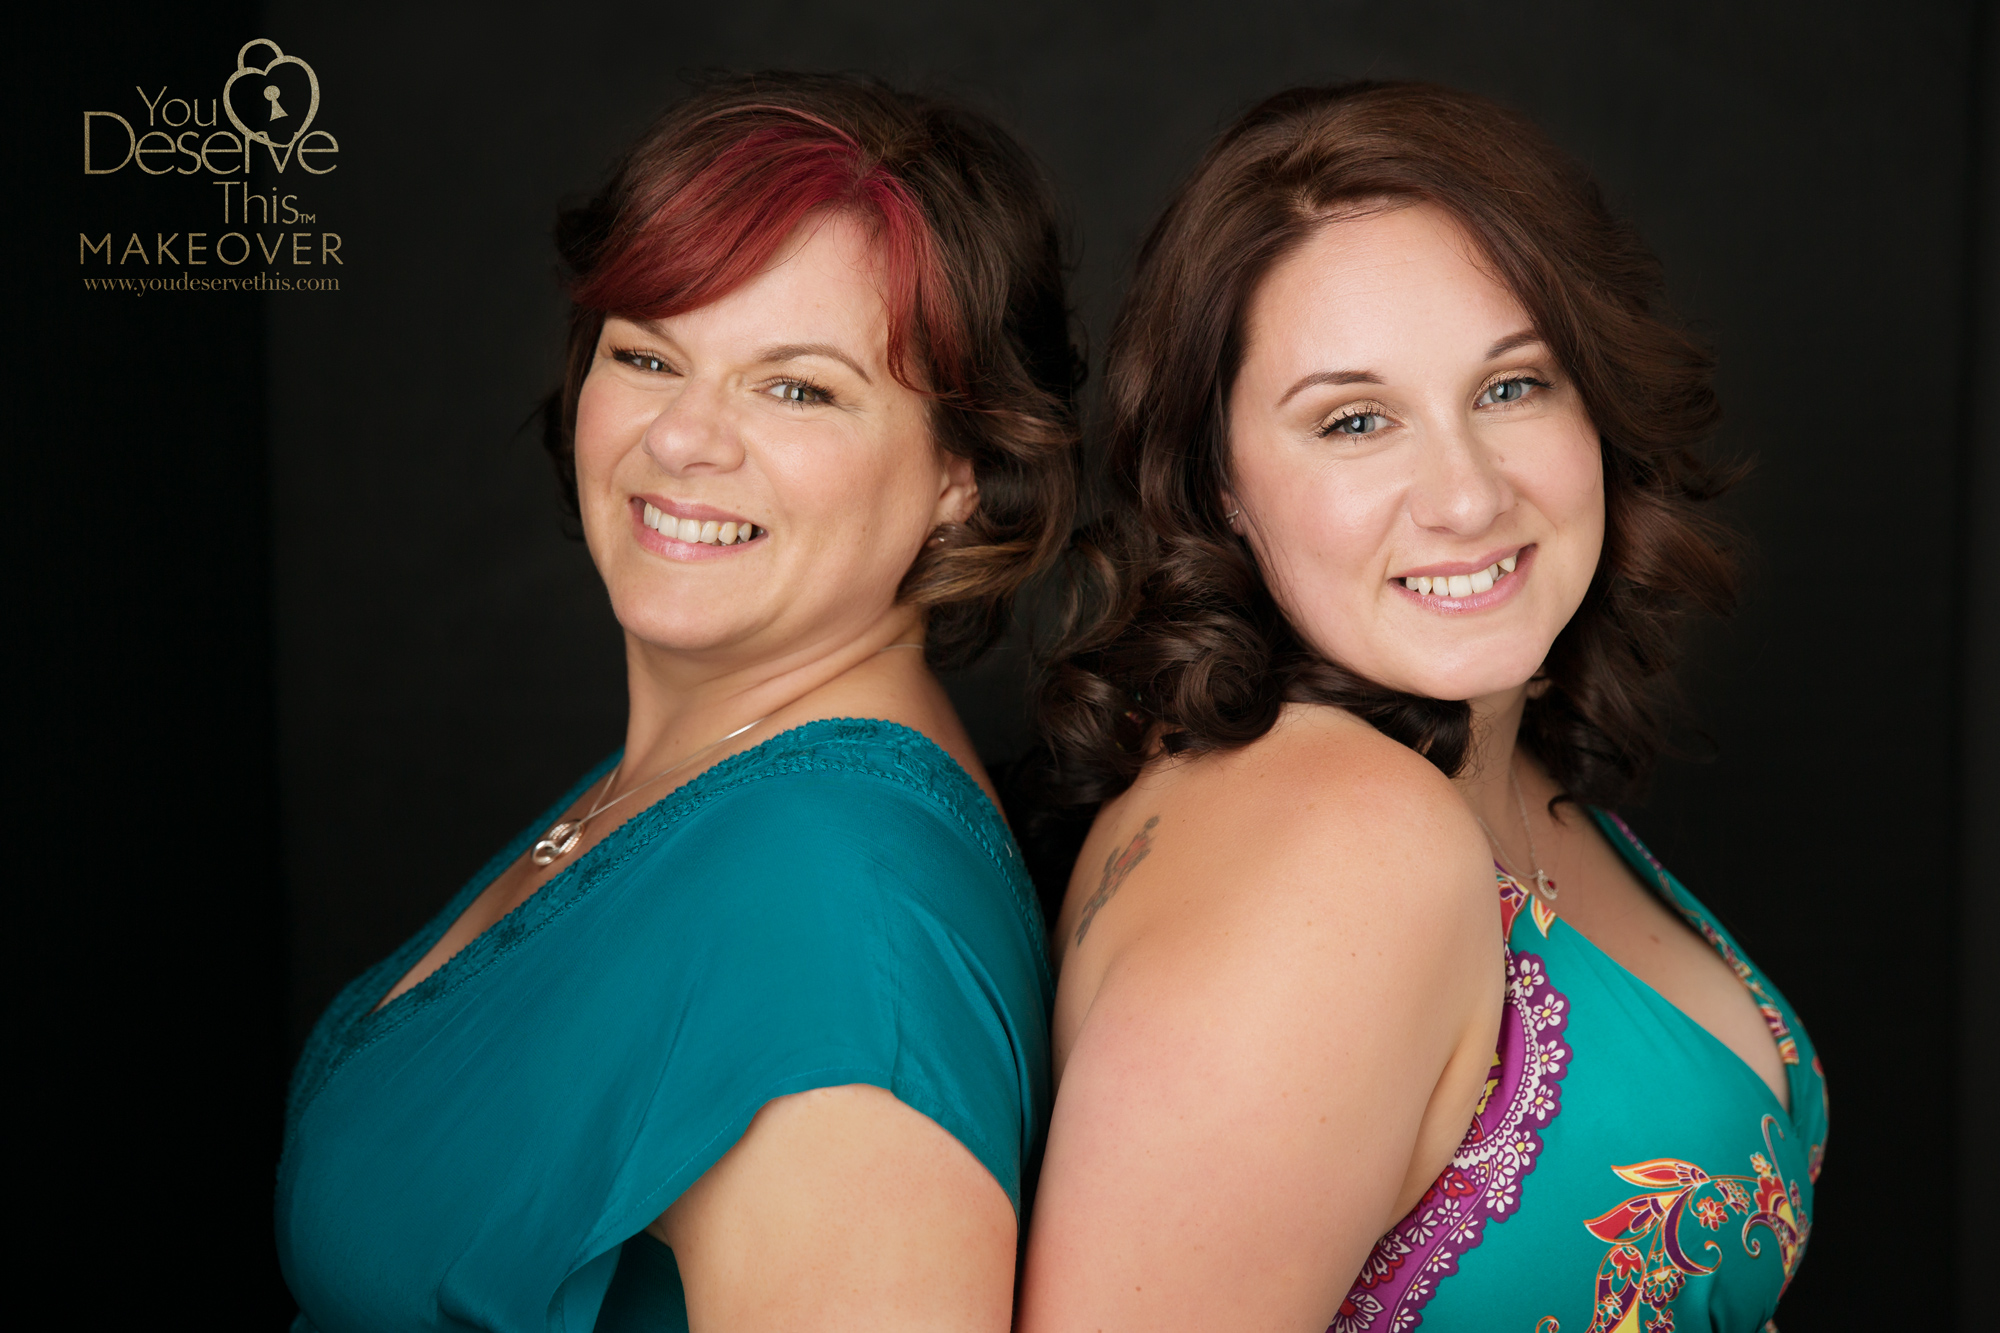 We had such a great time with these beautiful women, they thoroughly enjoyed their makeover and photo shoot.  youdeservethis.com  Surrey Portrait Photographer.